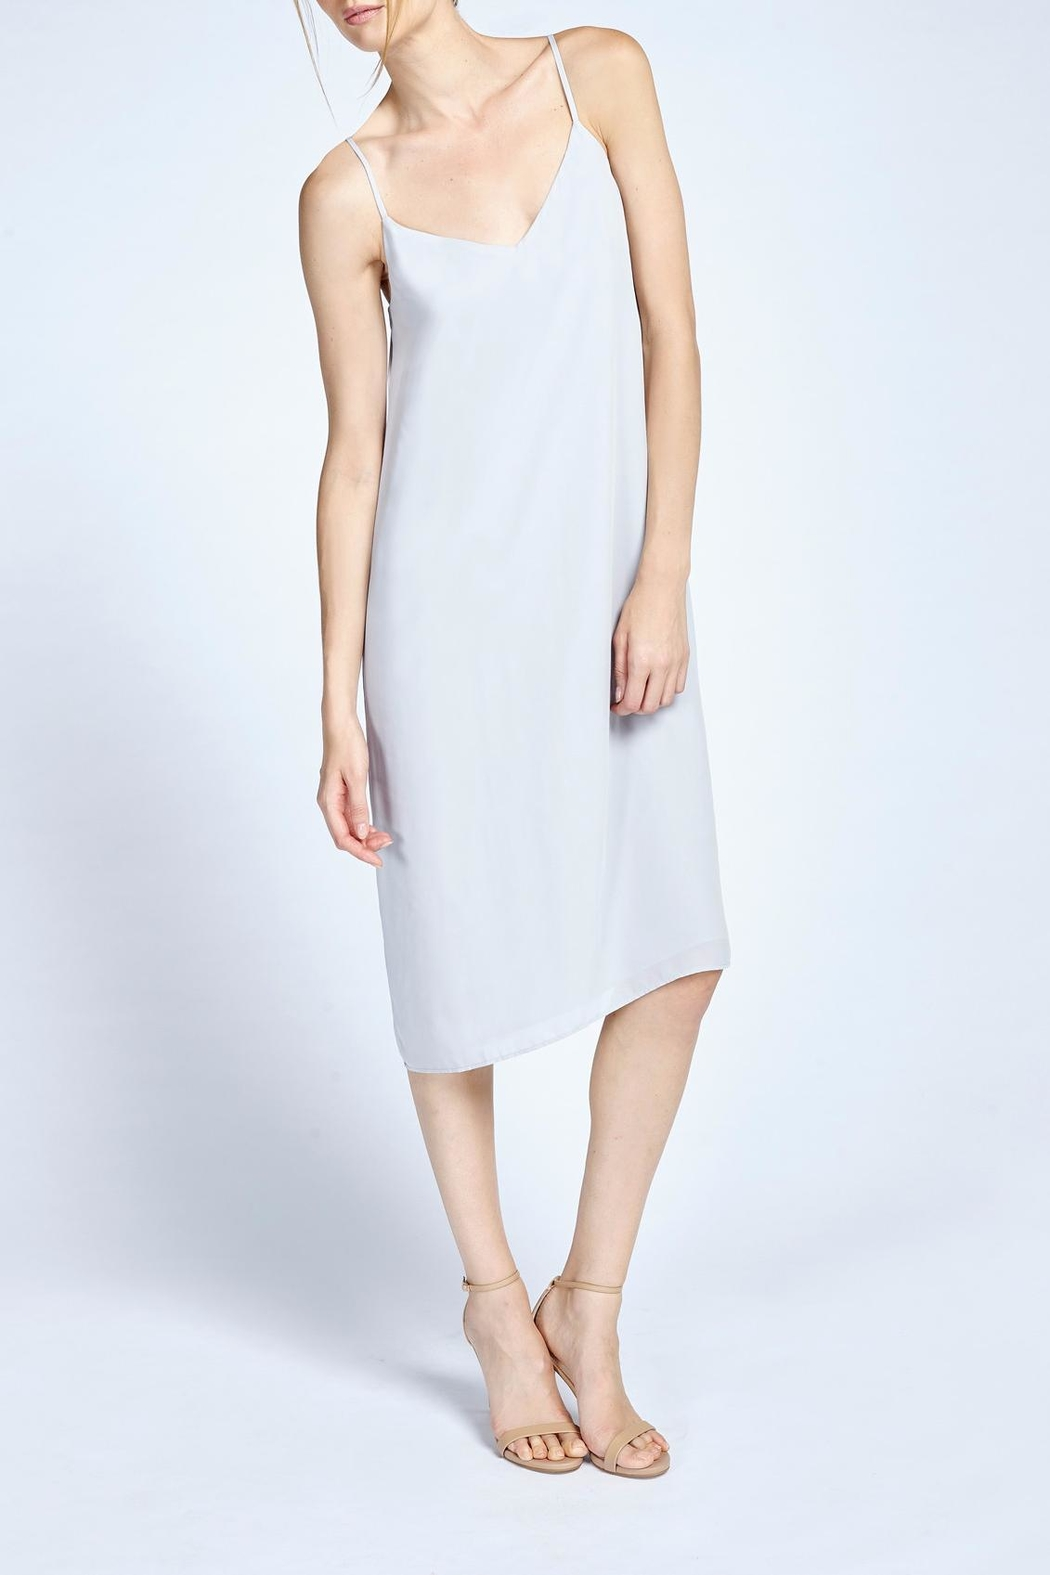 NOEL ASMAR COLLECTIONS Piper Slip Dress - Front Cropped Image